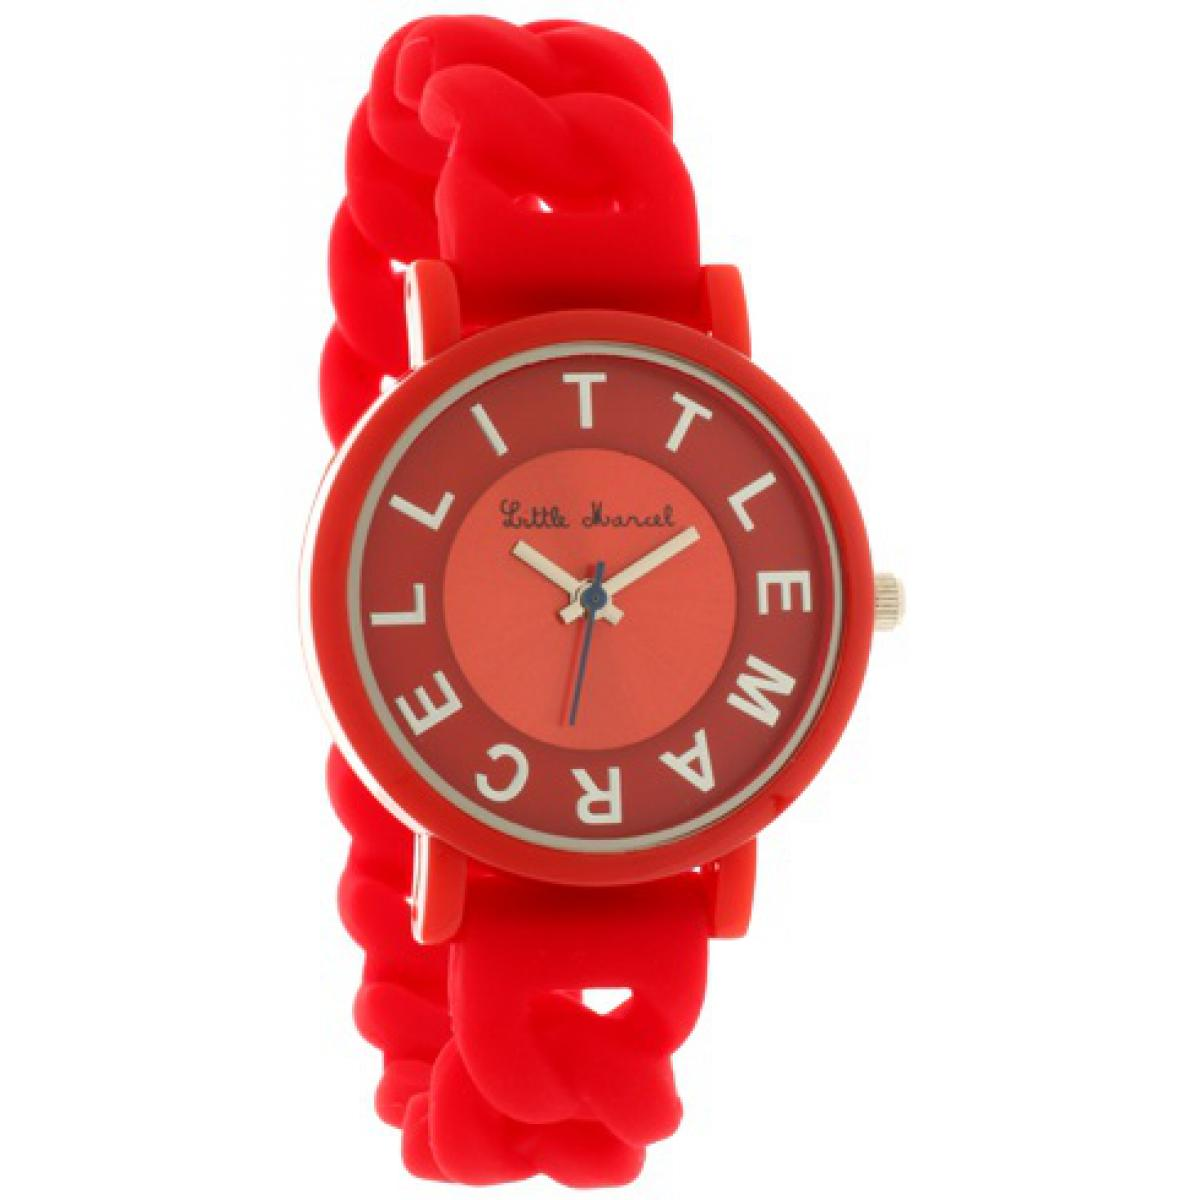 Montre Little marcel LM49RDSN - Montre Silicone Rouge Femme